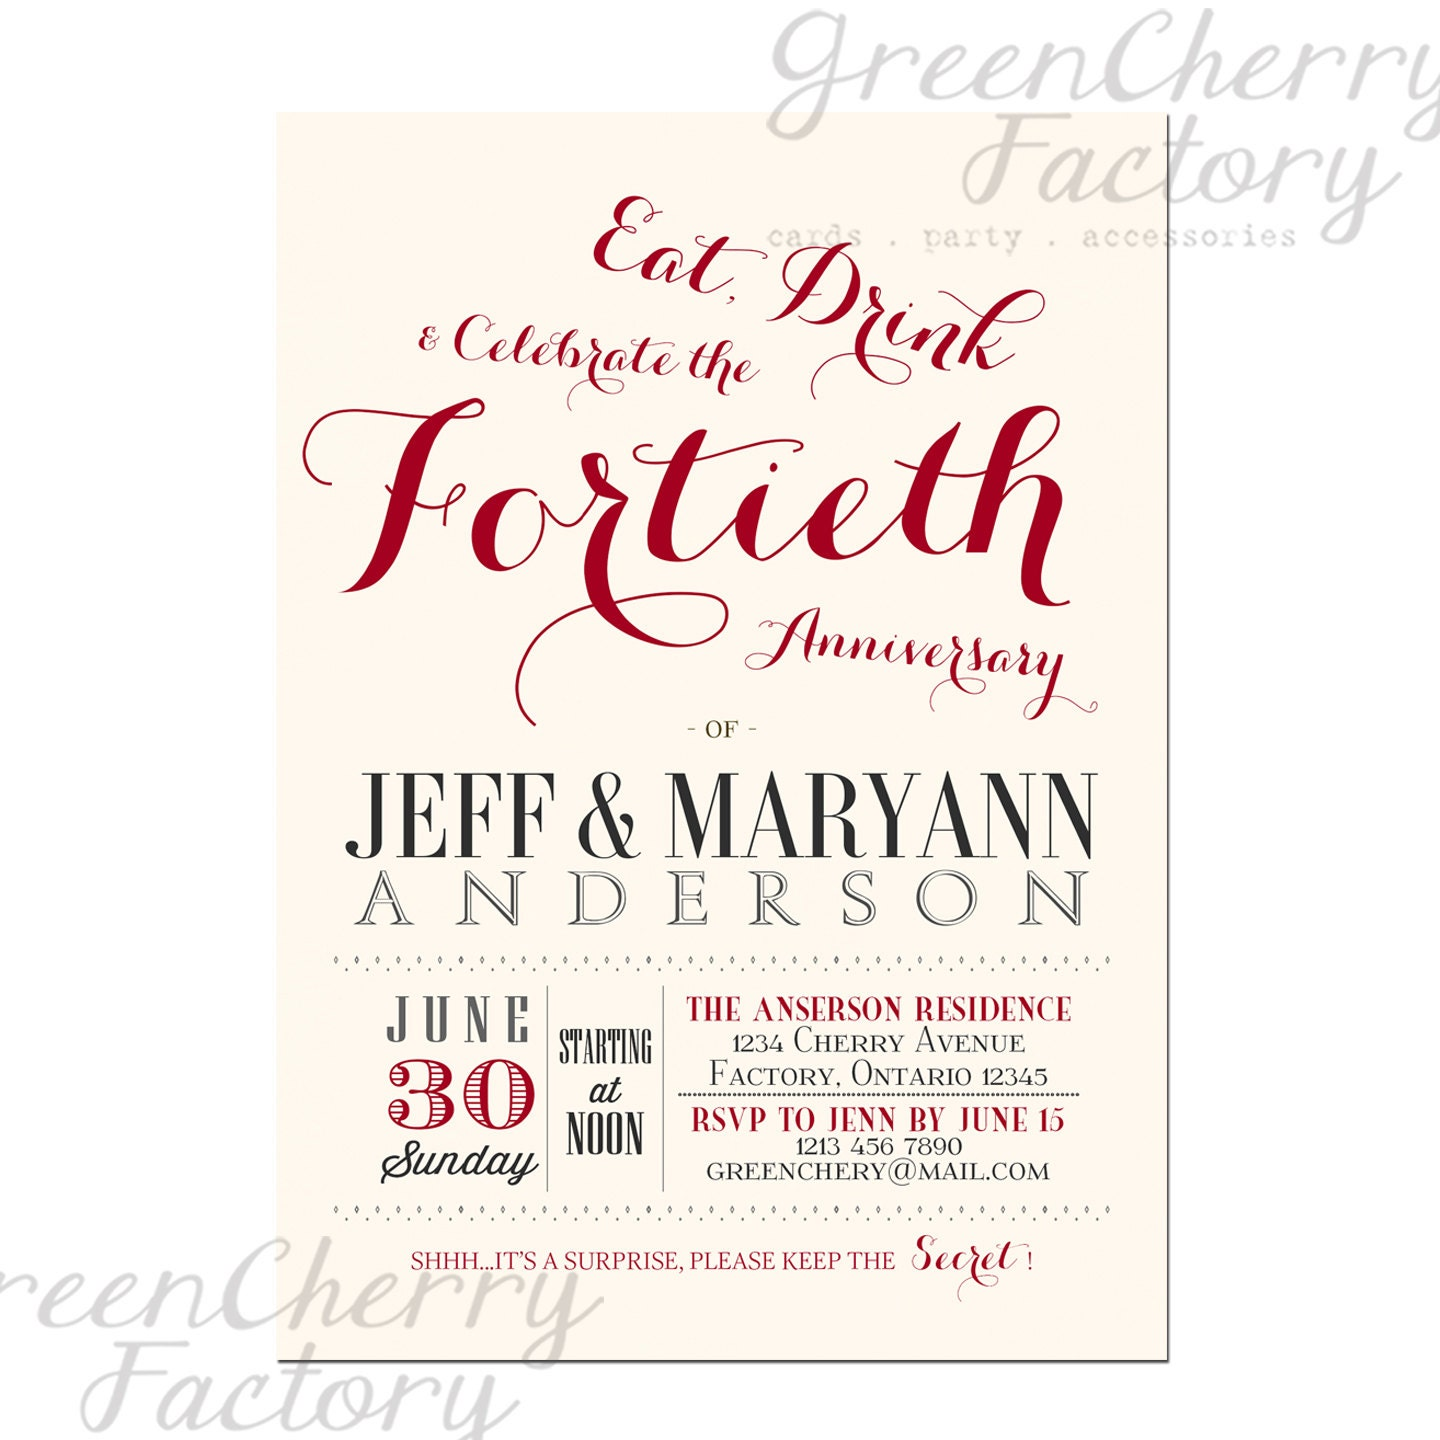 Wedding invitation wording 40th wedding anniversary invitation templates - Wedding anniversary invitations ...